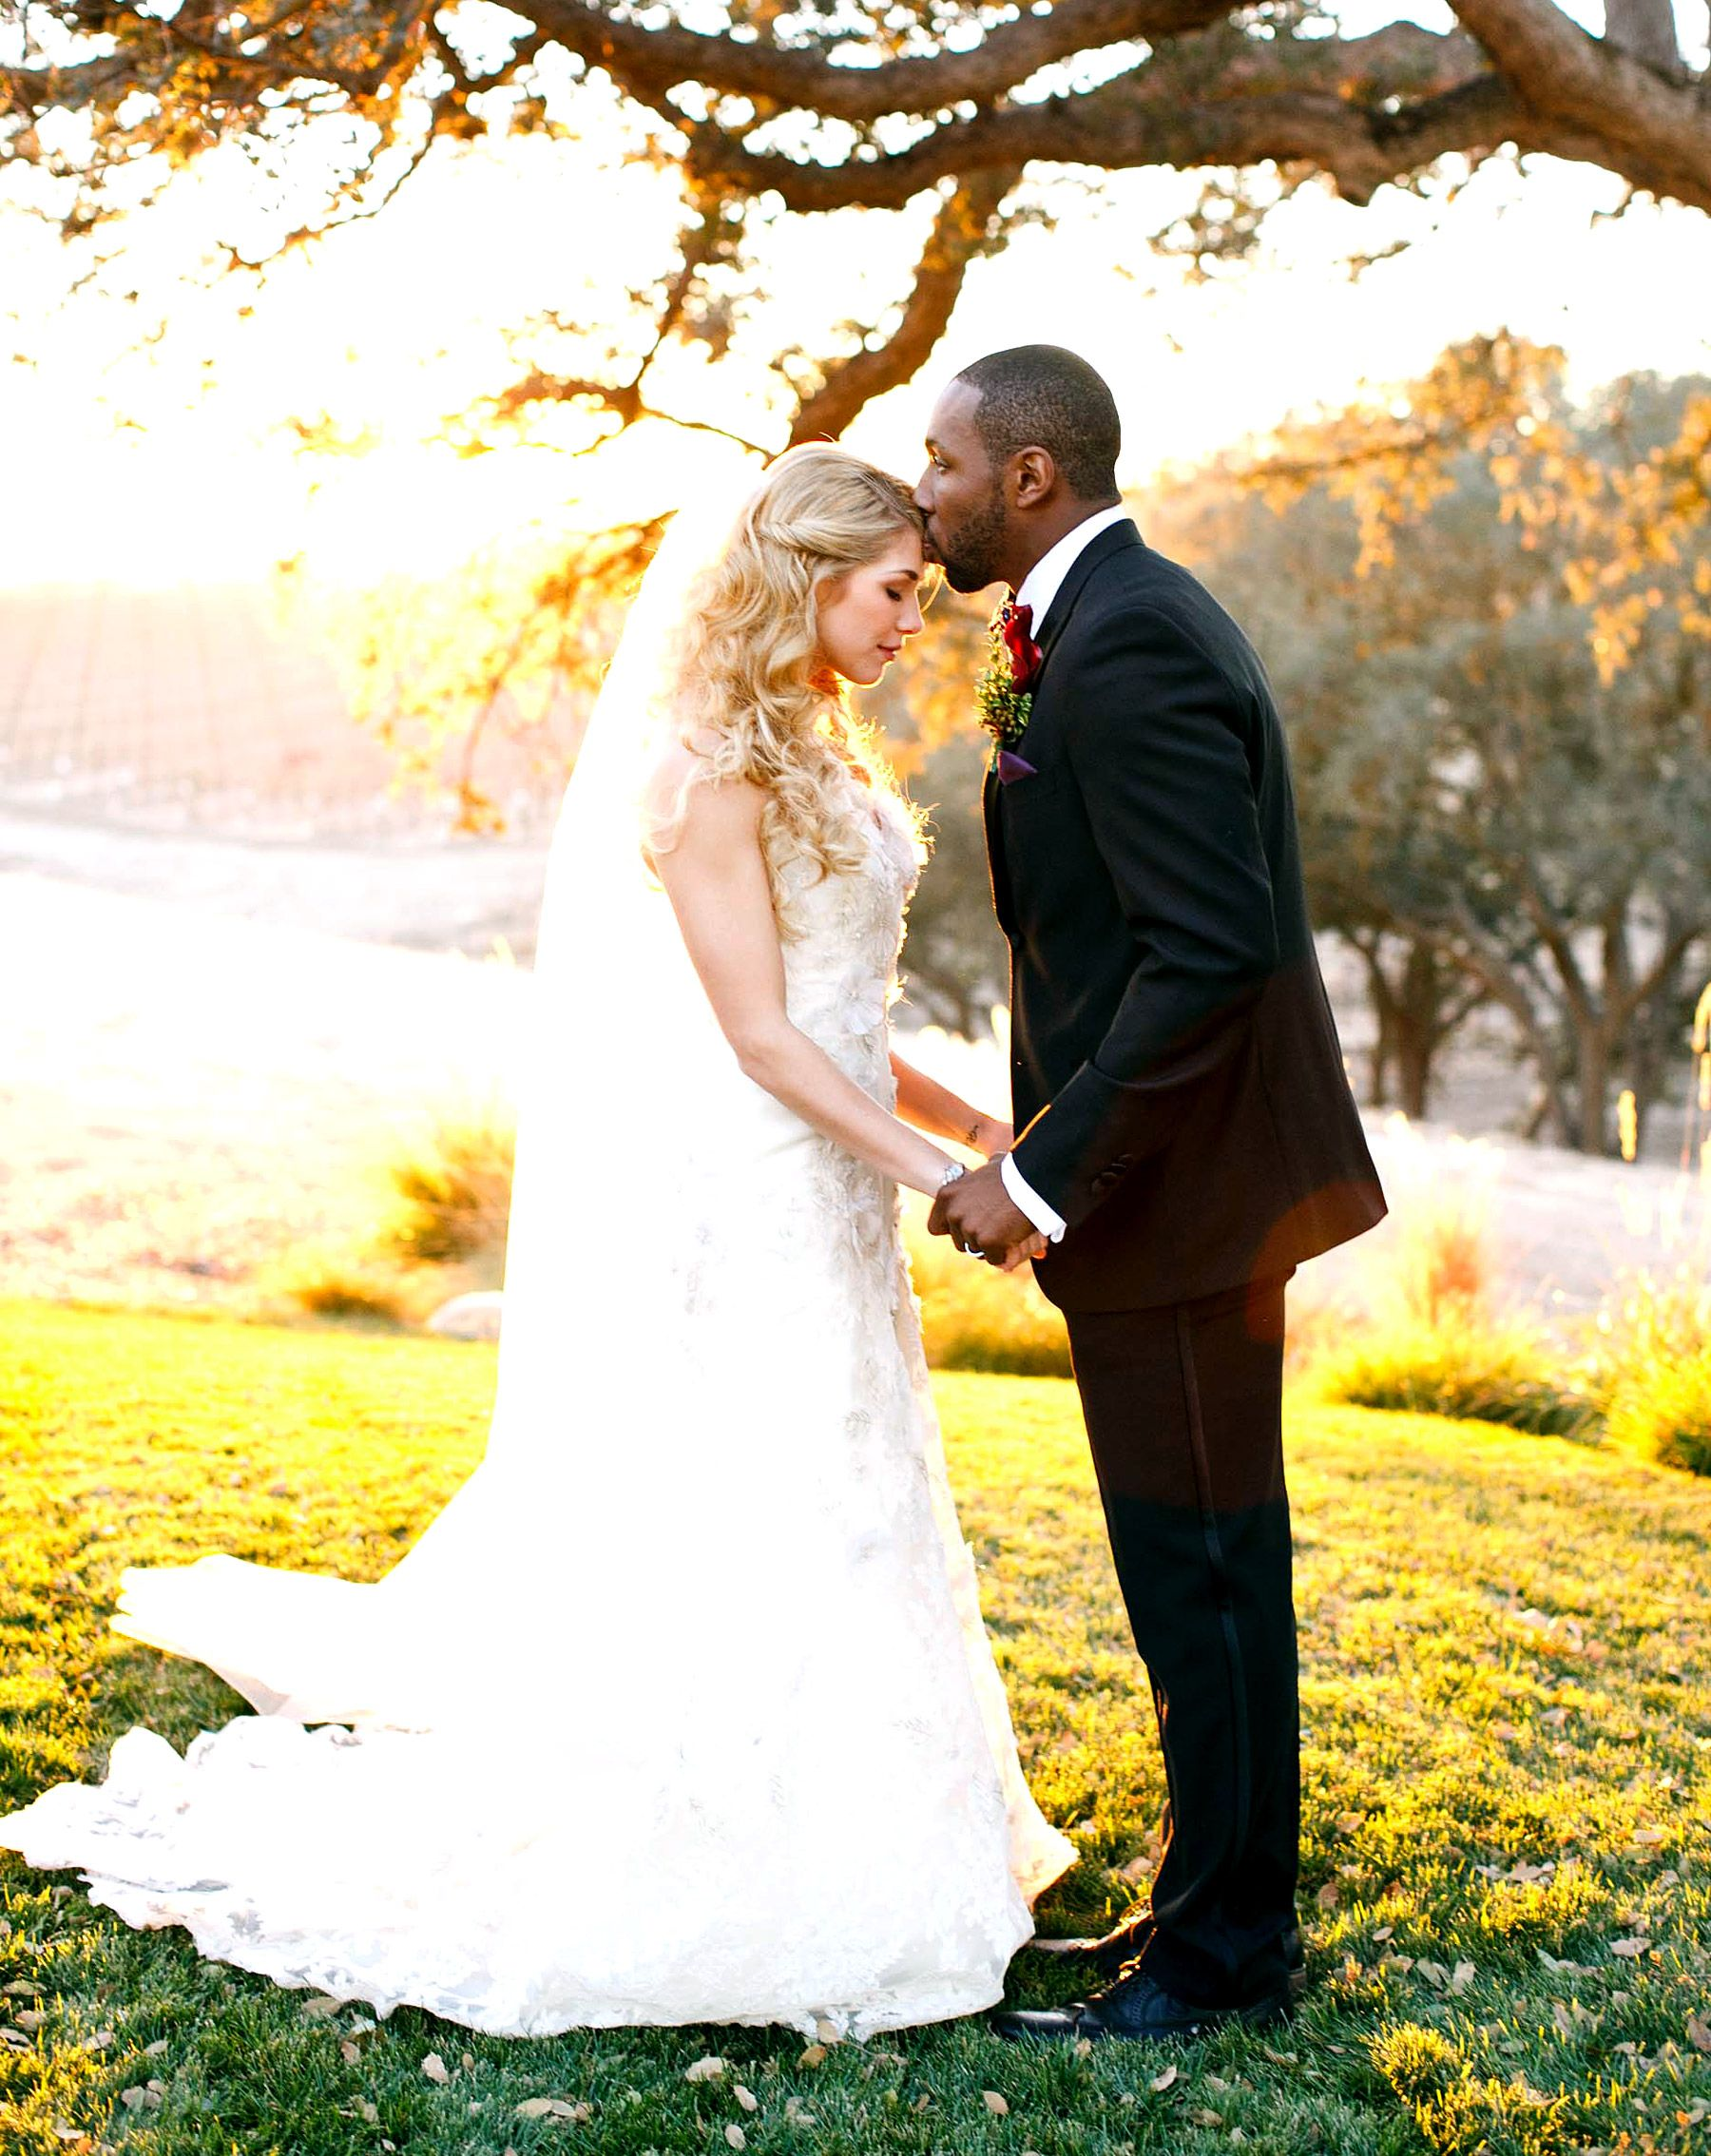 Gorgeous See Twitch And Allison Holker S Wedding Photo Tv Weddings Hollywood Wedding Wedding Photos